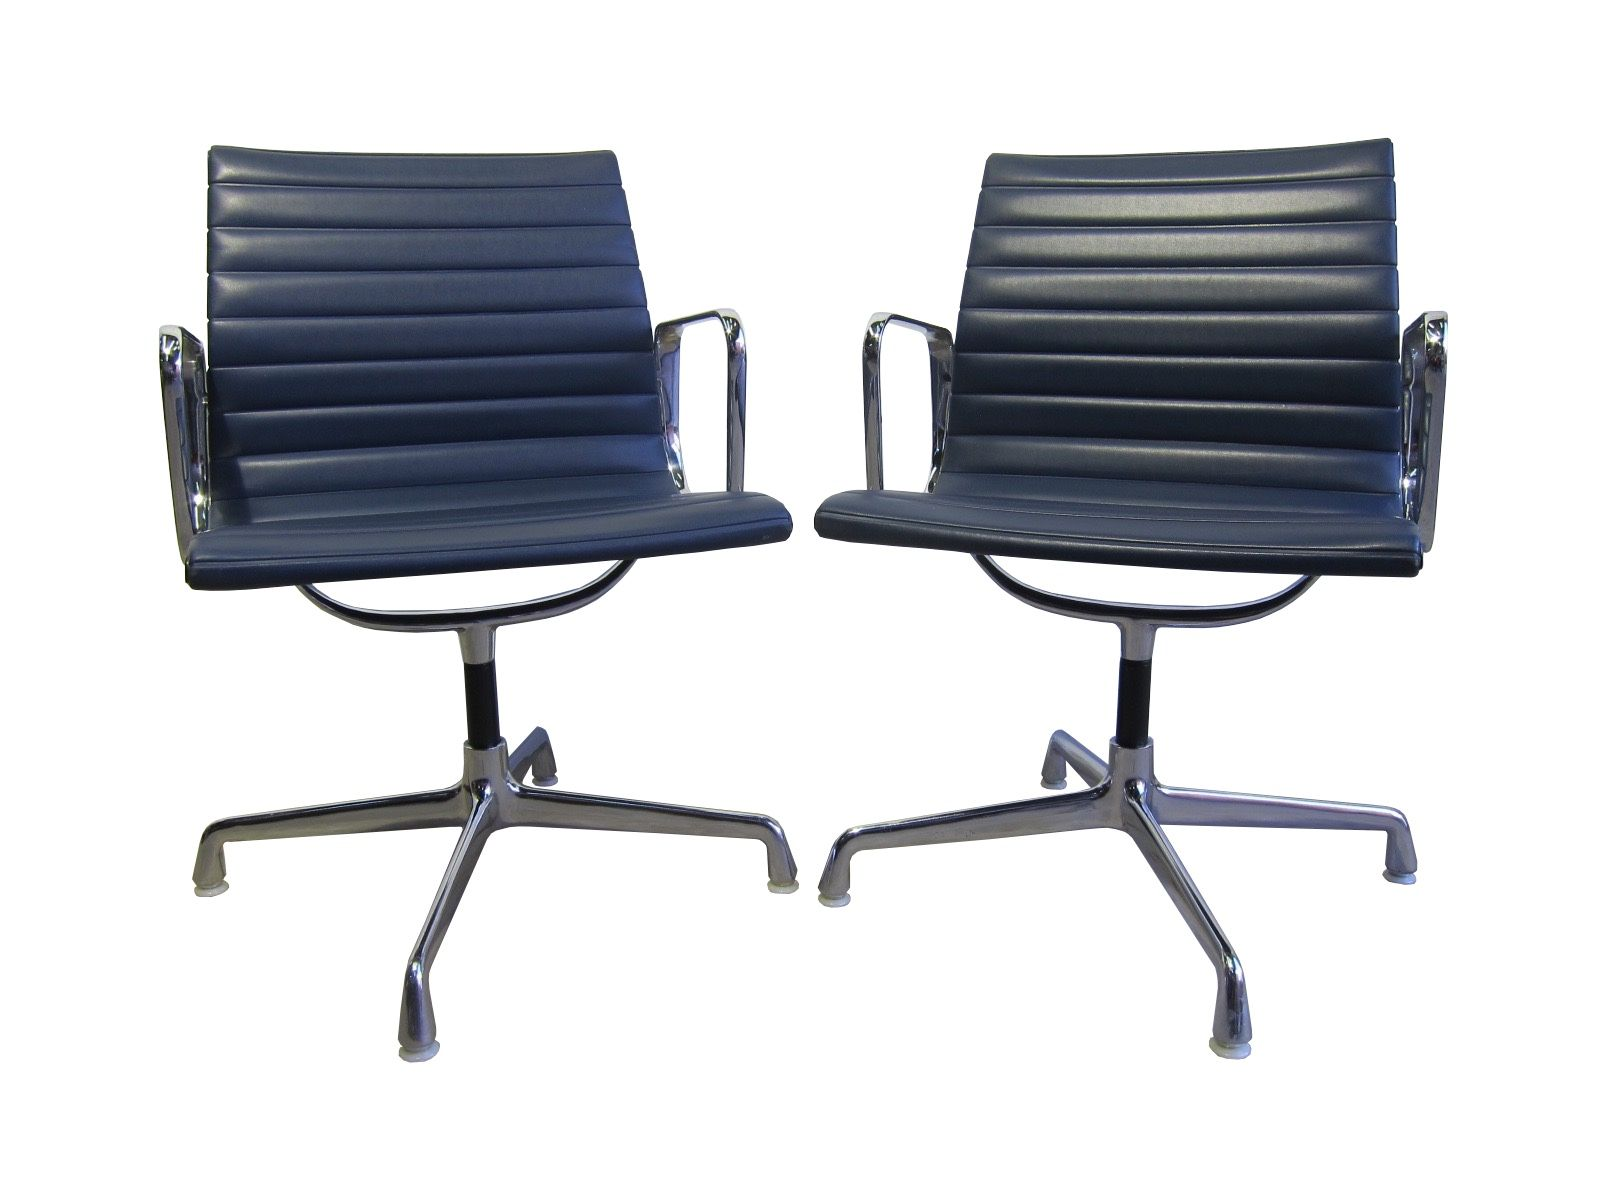 Eames 108 Ea 108 Vinyl Aluminum Chairs By Charles Ray Eames For Herman Miller 1960s Set Of 2